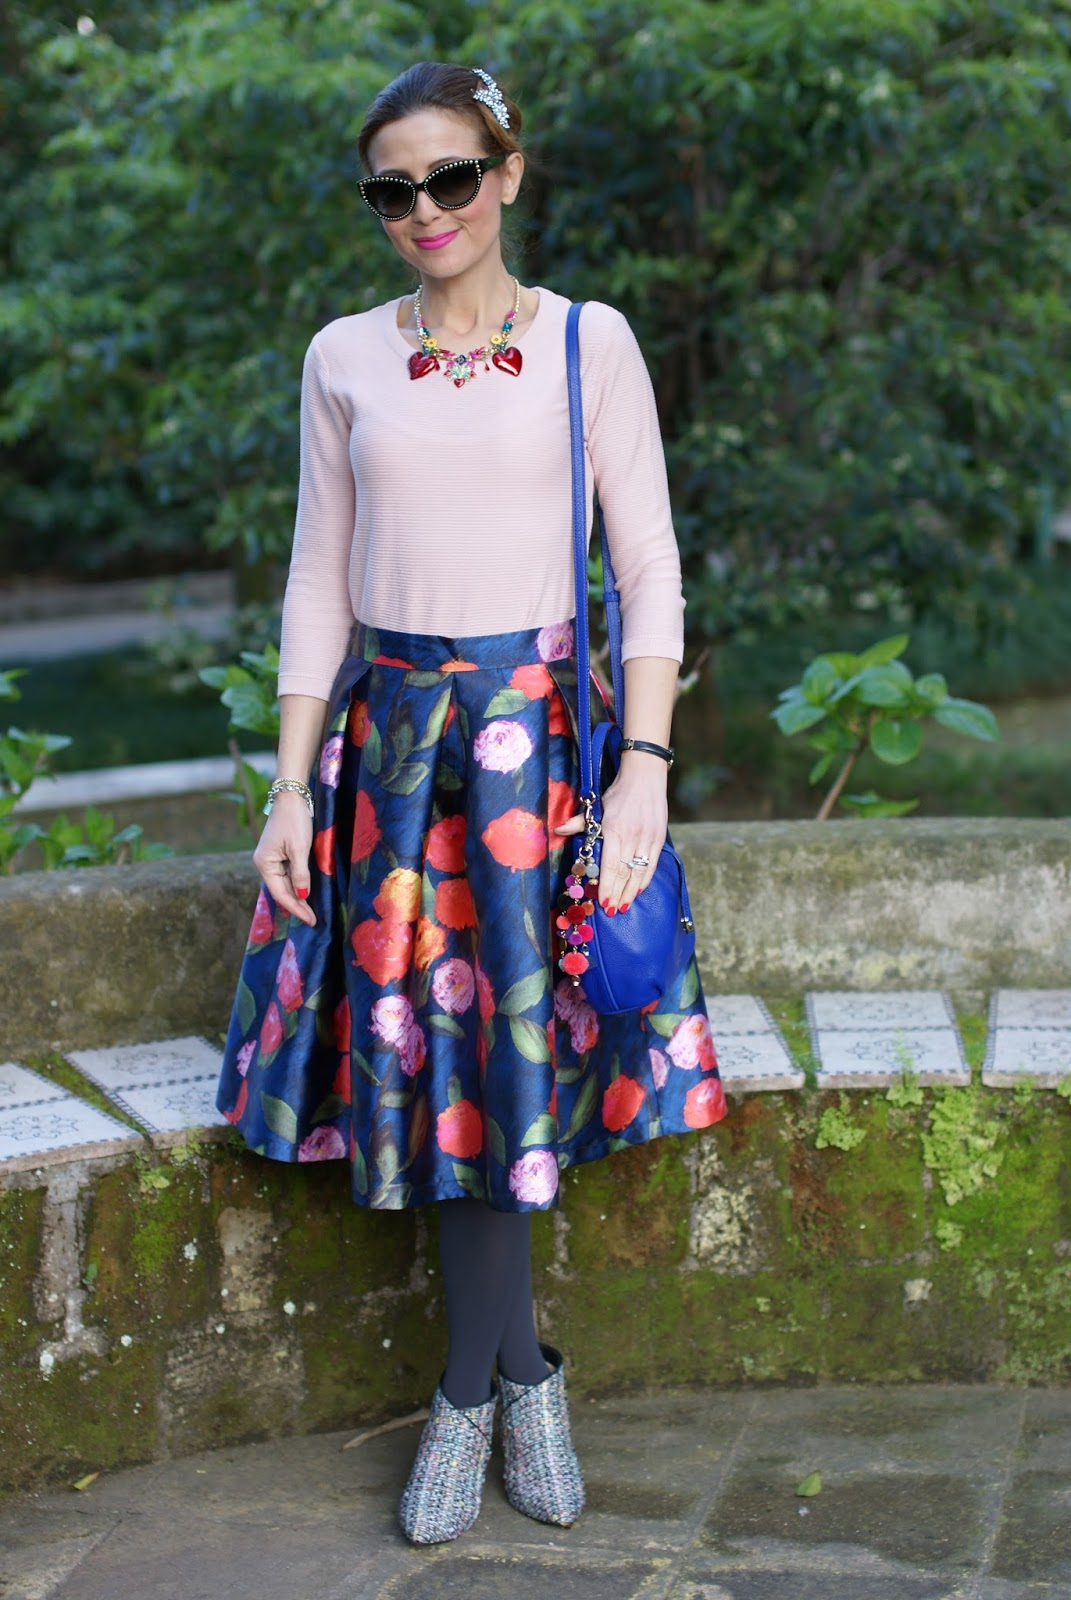 Paccio midi skirt and Kate Spade bucket bag for a princess look on Fashion and Cookies fashion blog, fashion blogger style